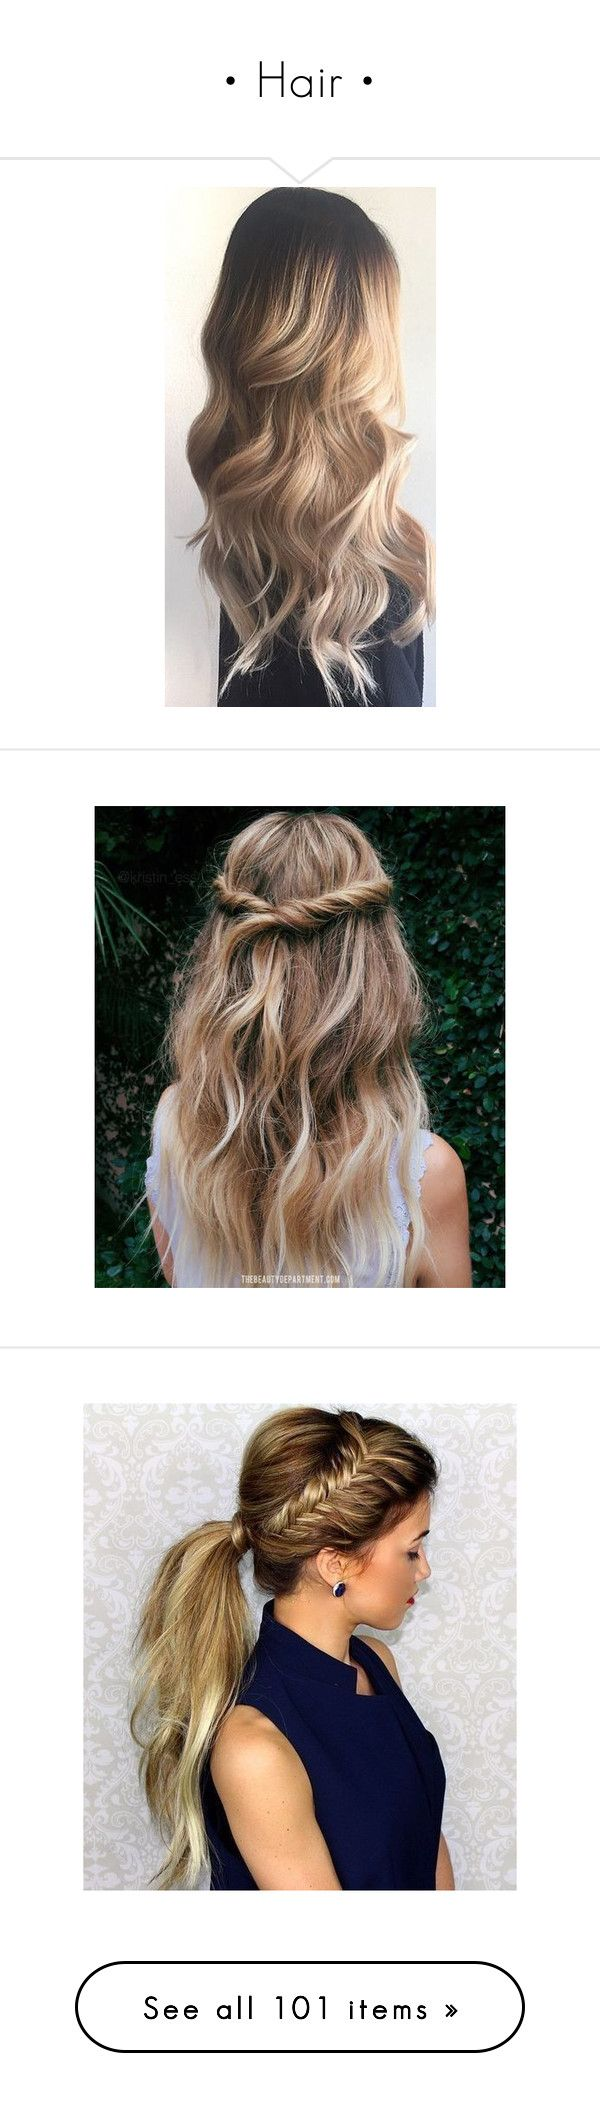 """• Hair •"" by westcoastbabes ❤ liked on Polyvore featuring beauty products, haircare, hair styling tools, blow dryers & irons, hair, curling iron, hairstyles, accessories, hair accessories and cabelo"